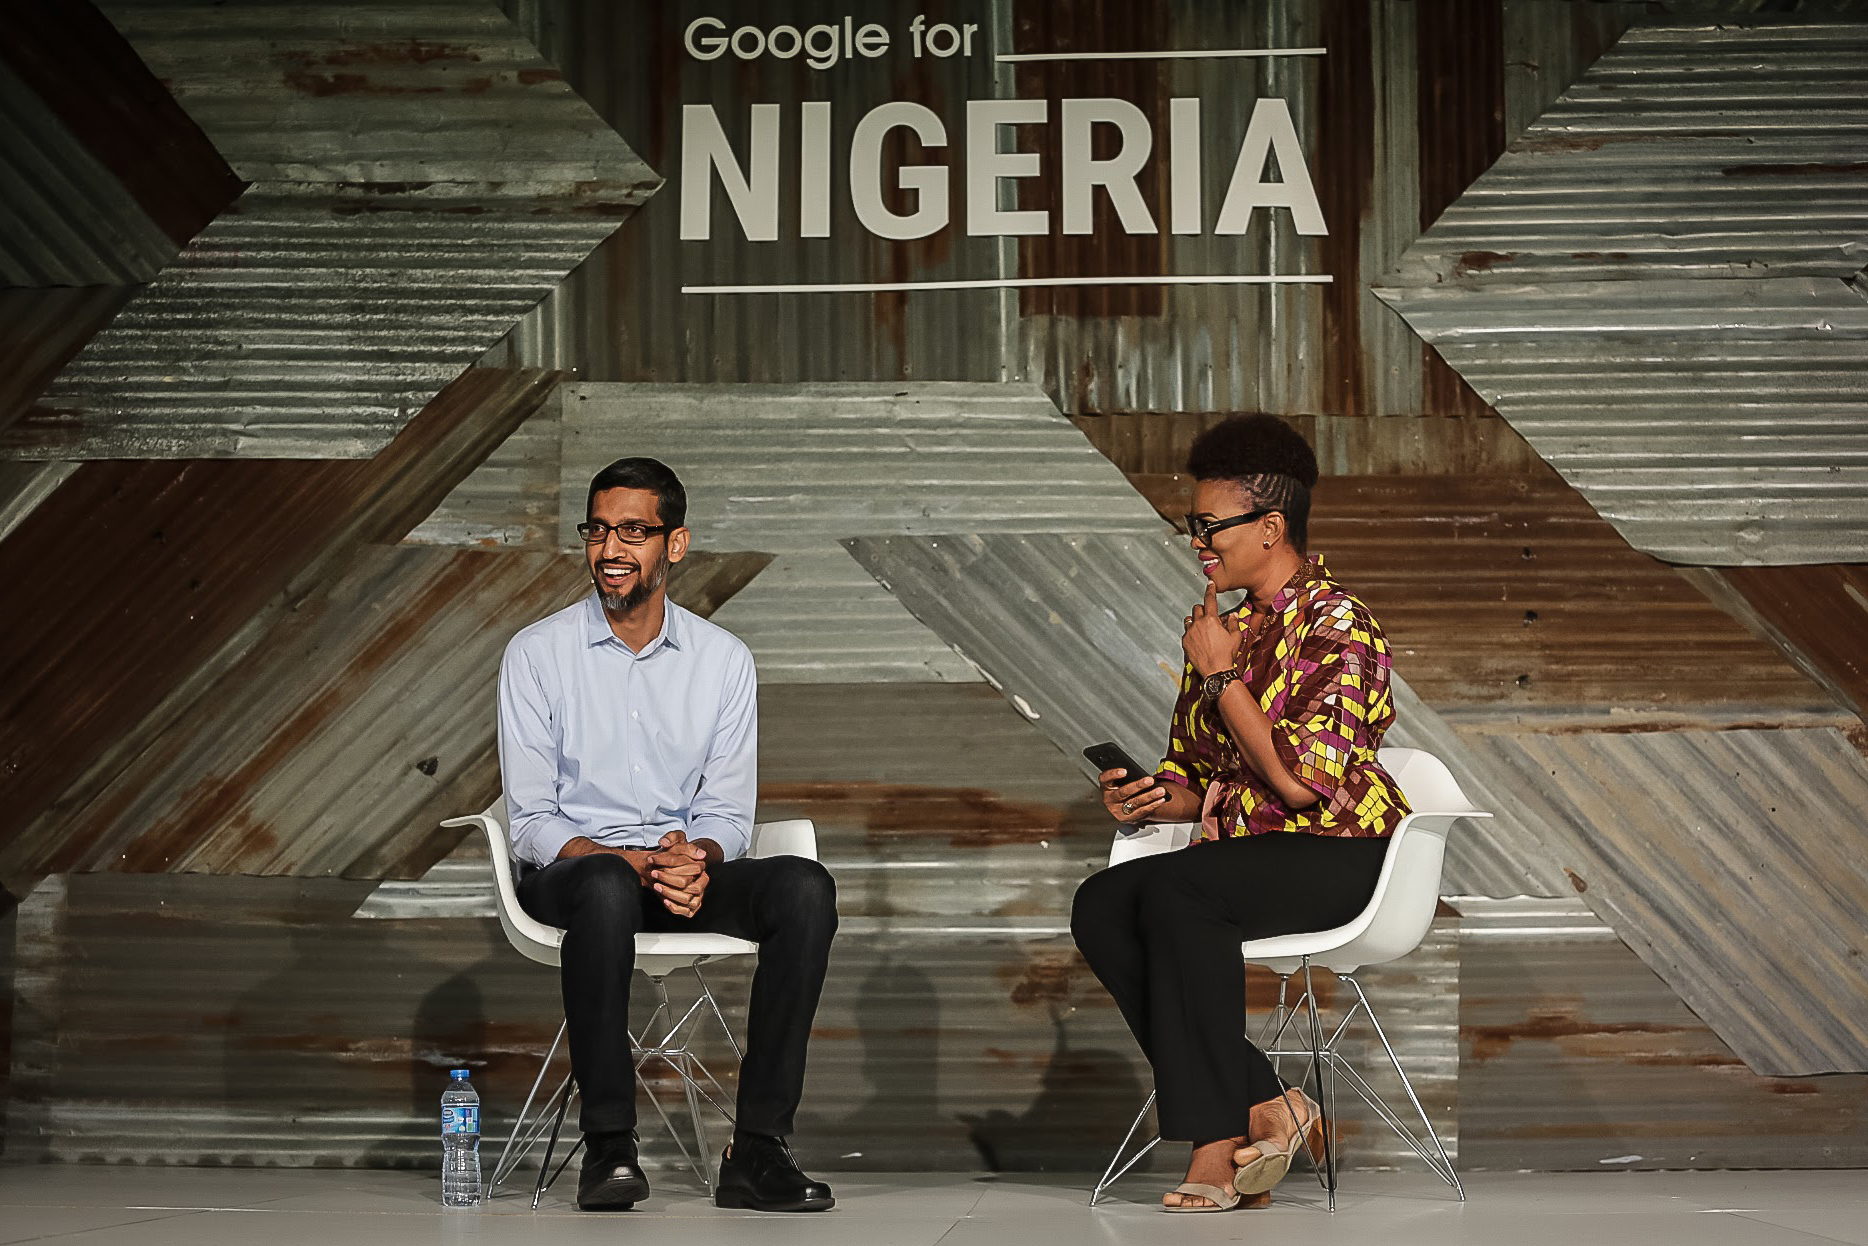 #GoogleForNigeria: Making the internet work better for everyone in Africa